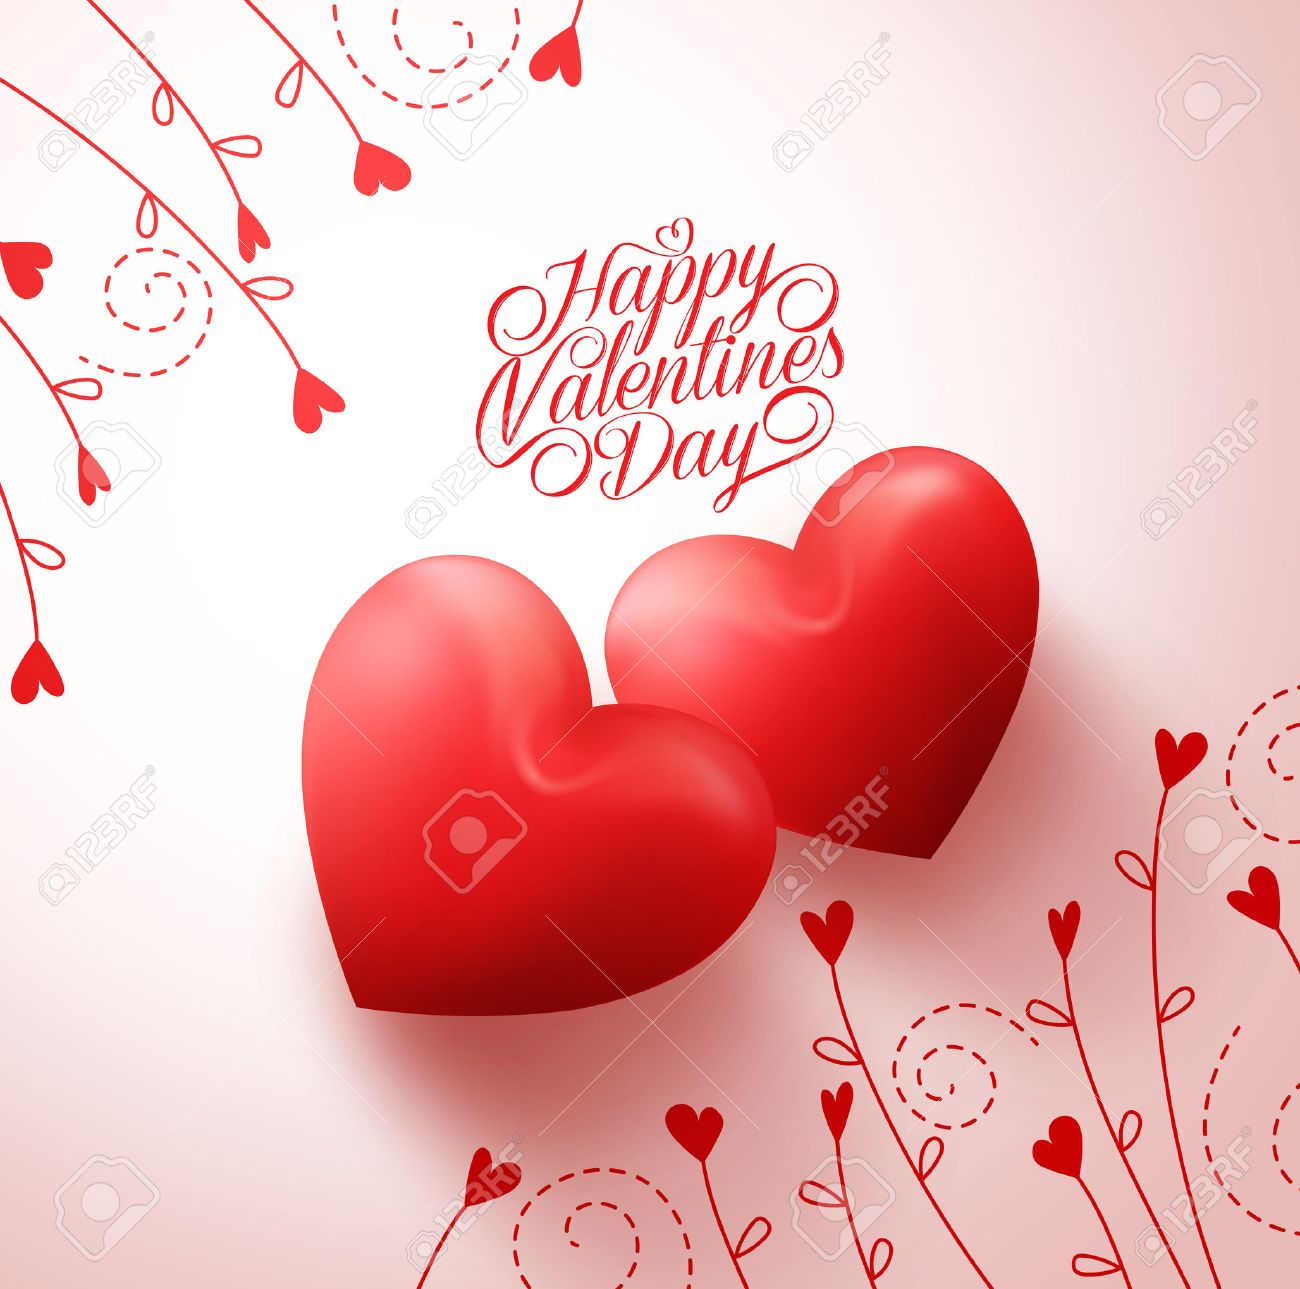 Two red hearts for lovers with happy valentines day greetings two red hearts for lovers with happy valentines day greetings in white background with flowers vine m4hsunfo